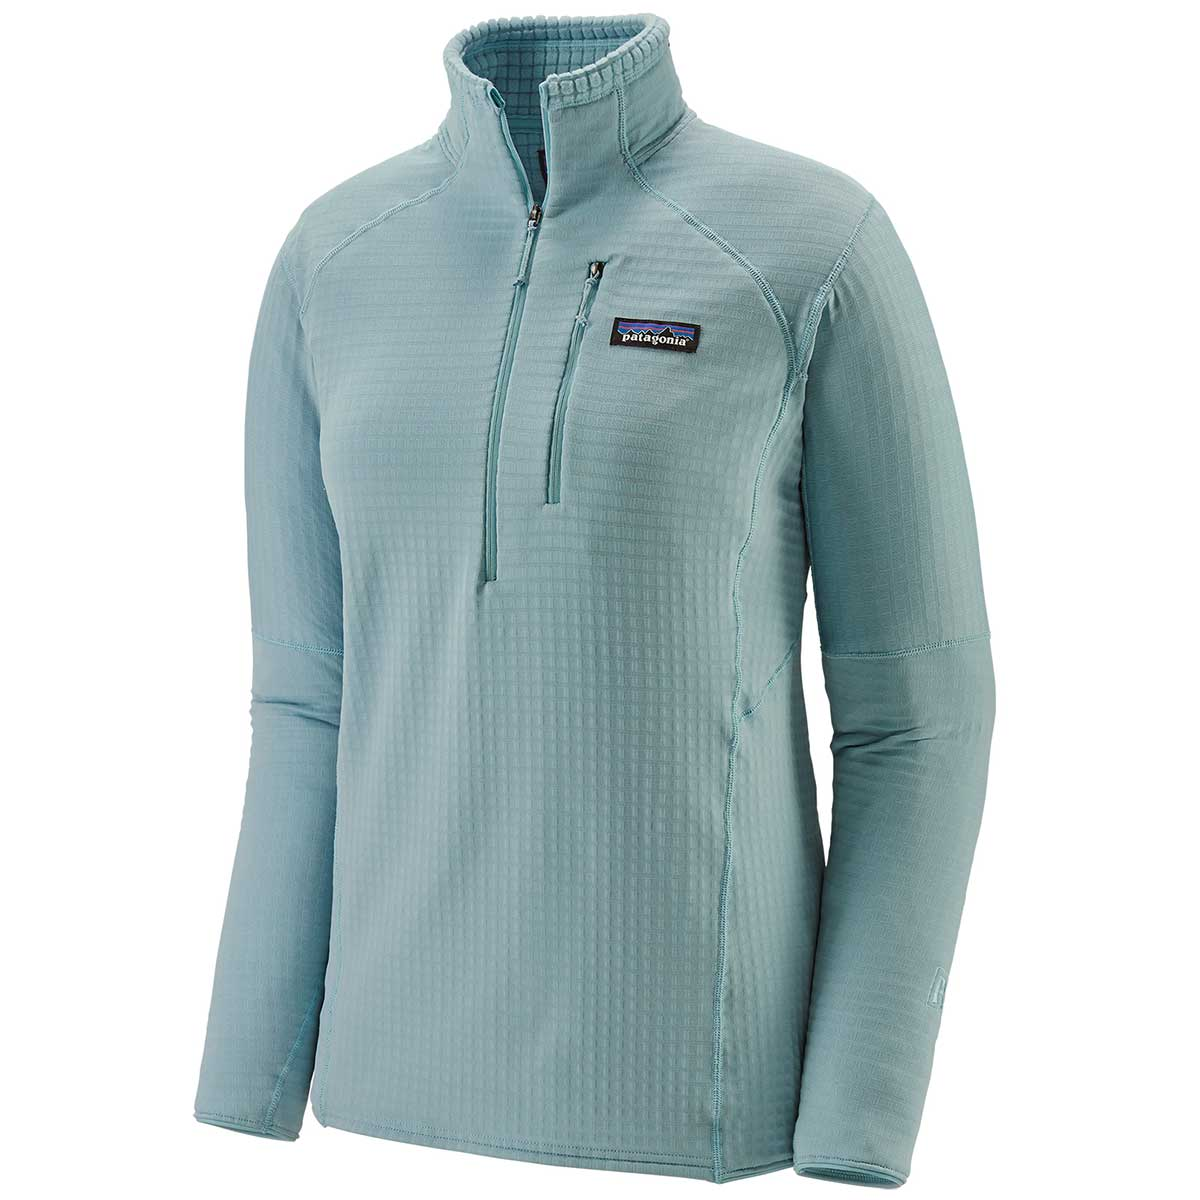 Patagonia women's R1 Pullover in Big Sky Blue front view